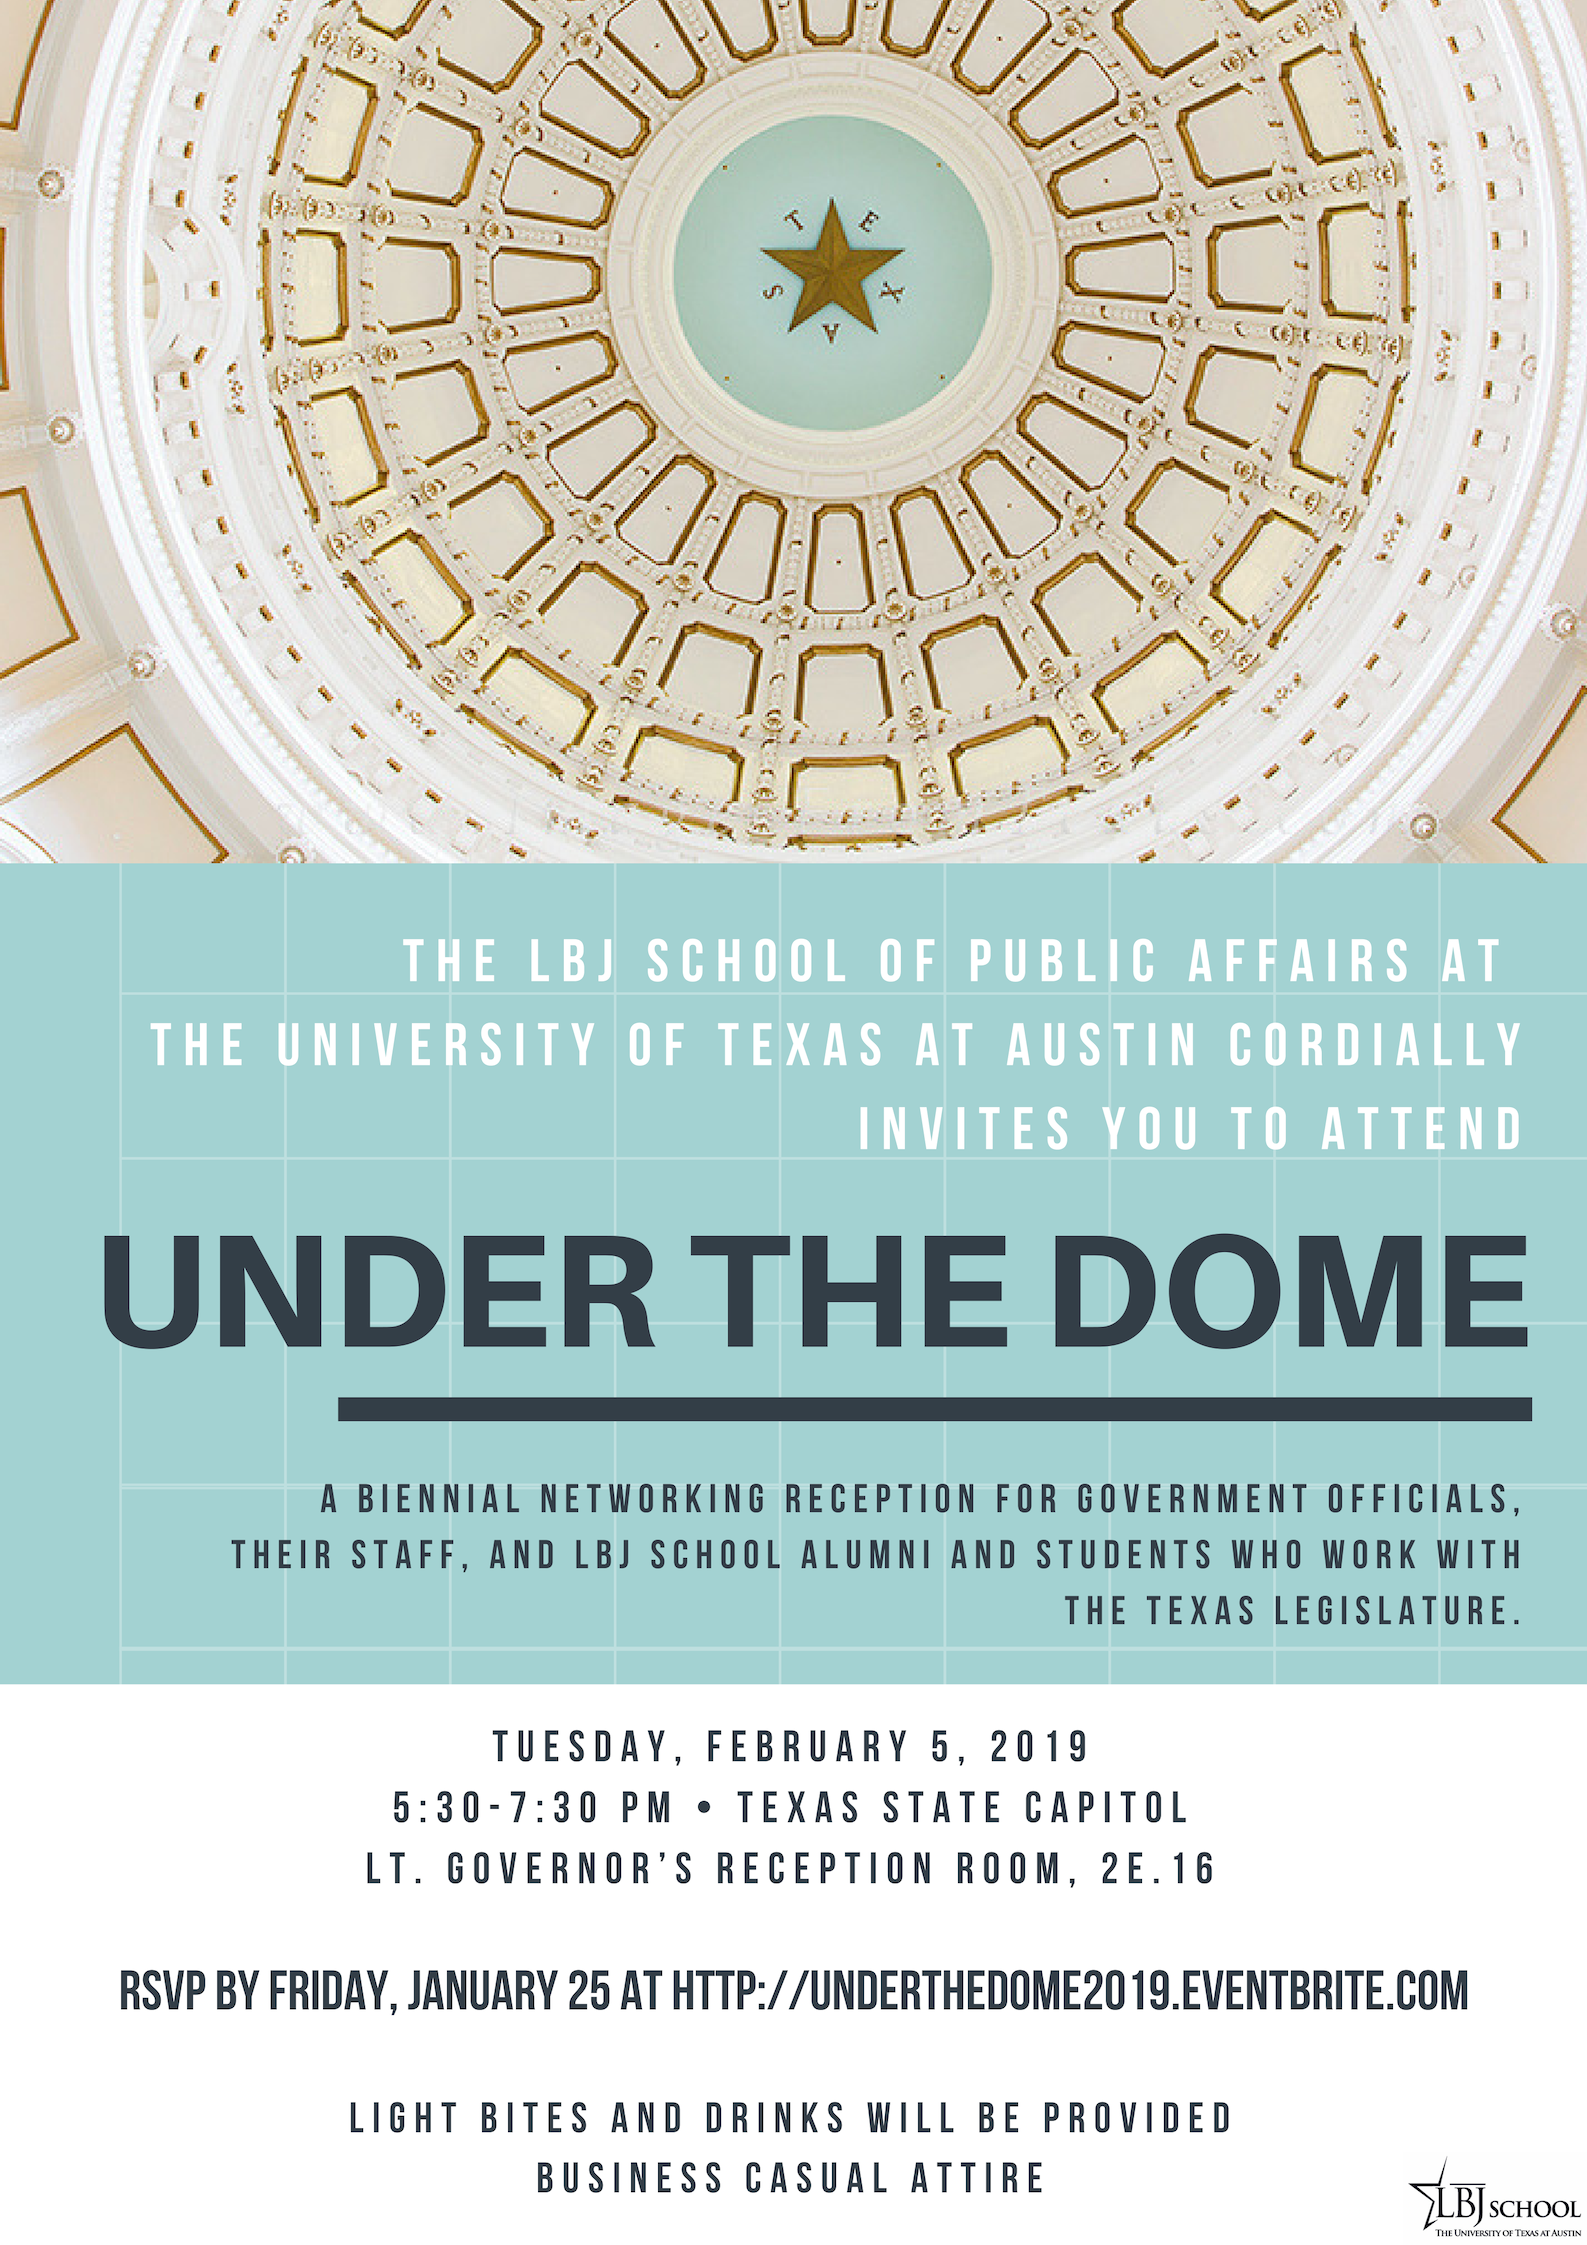 Under the Dome 2019 Invitation